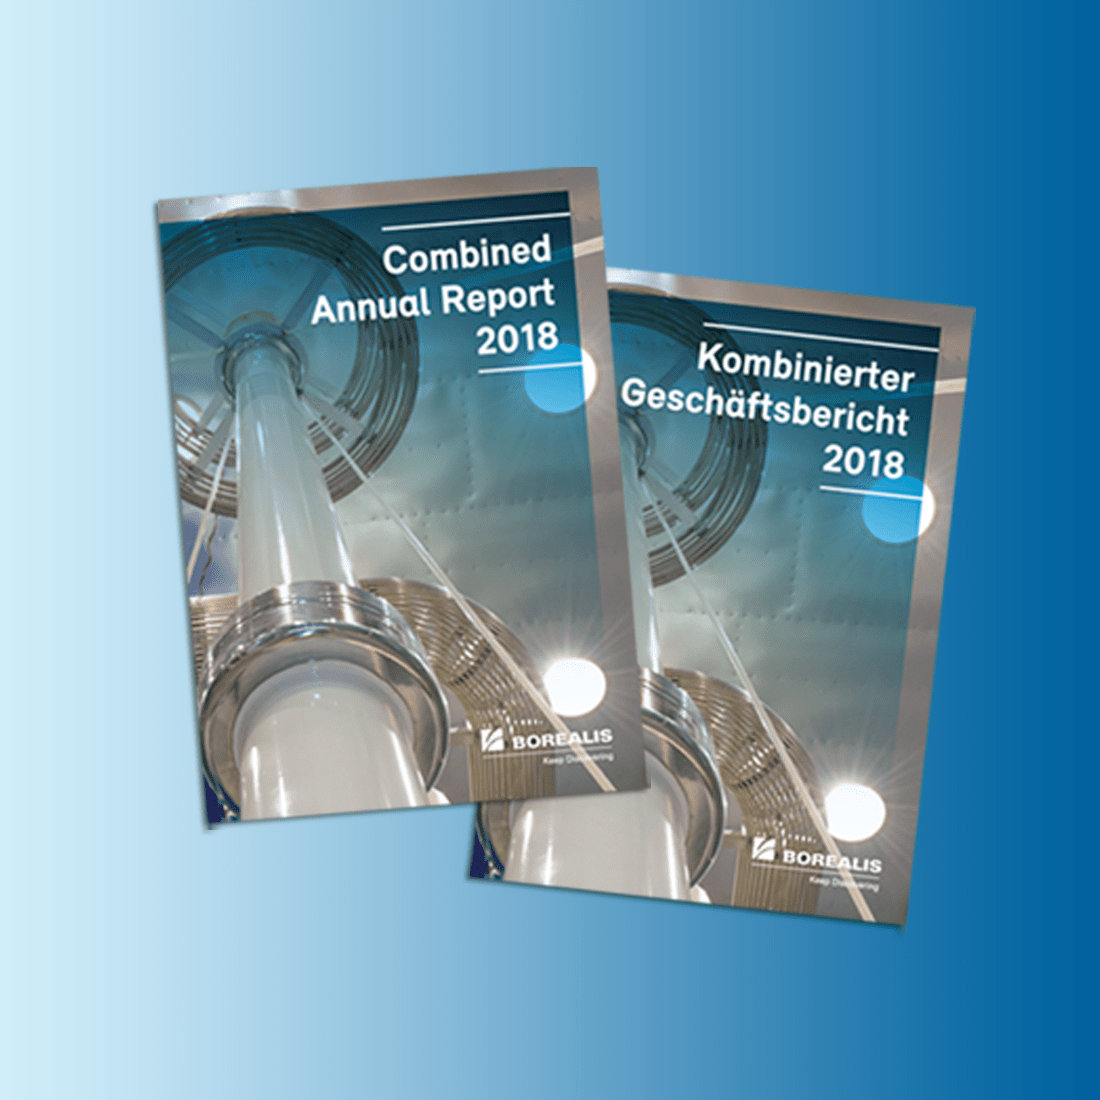 Combined Annual Report 2018 out now - Borealis